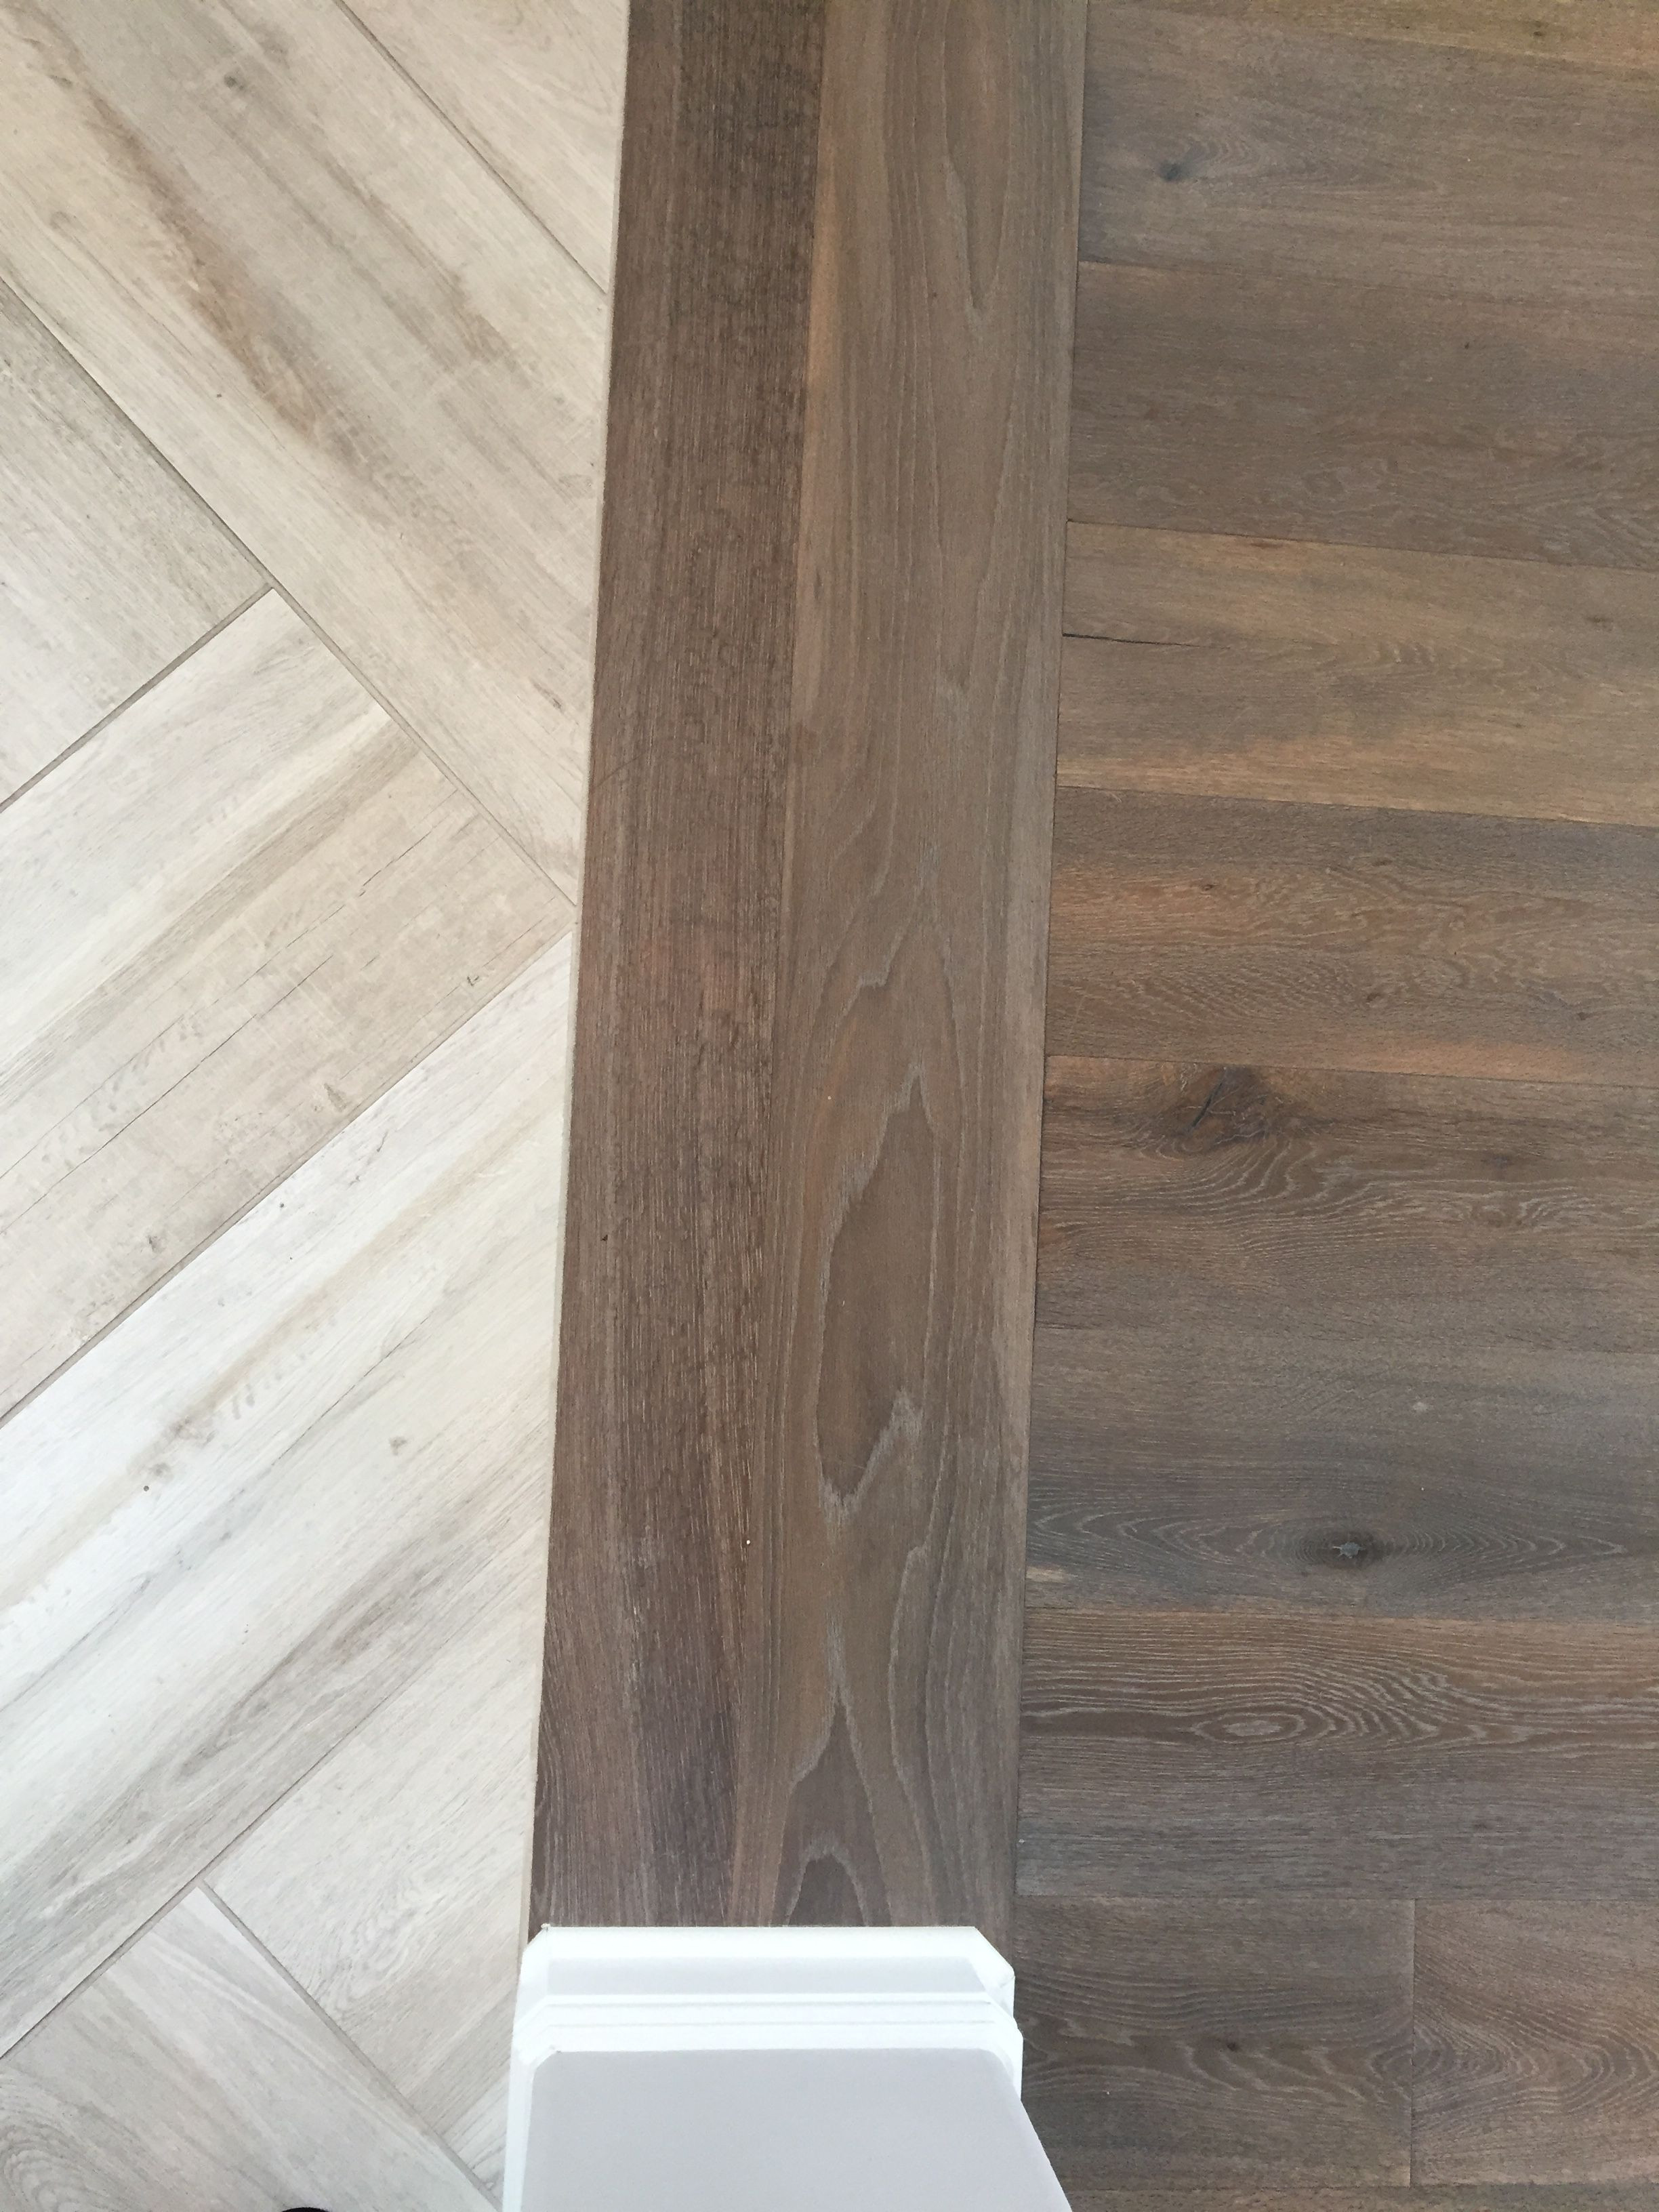 transition between tile and hardwood floor of how to make wood stain fresh floor transition laminate to for how to make wood stain fresh floor transition laminate to herringbone tile pattern